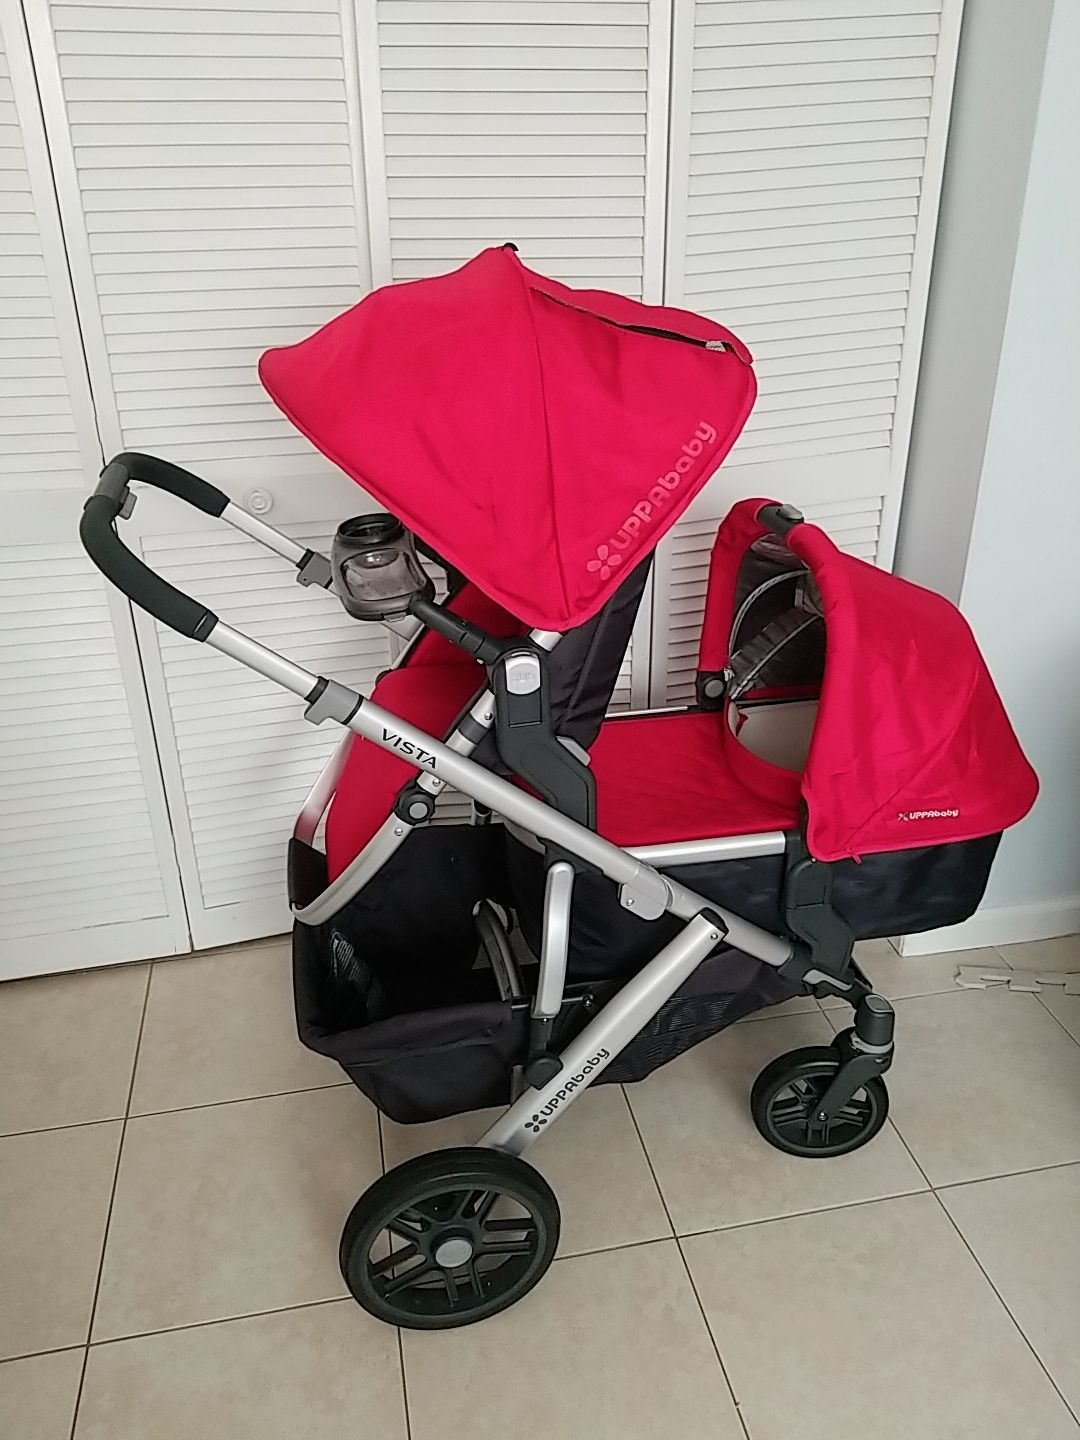 Pin on UPPAbaby Travel systems